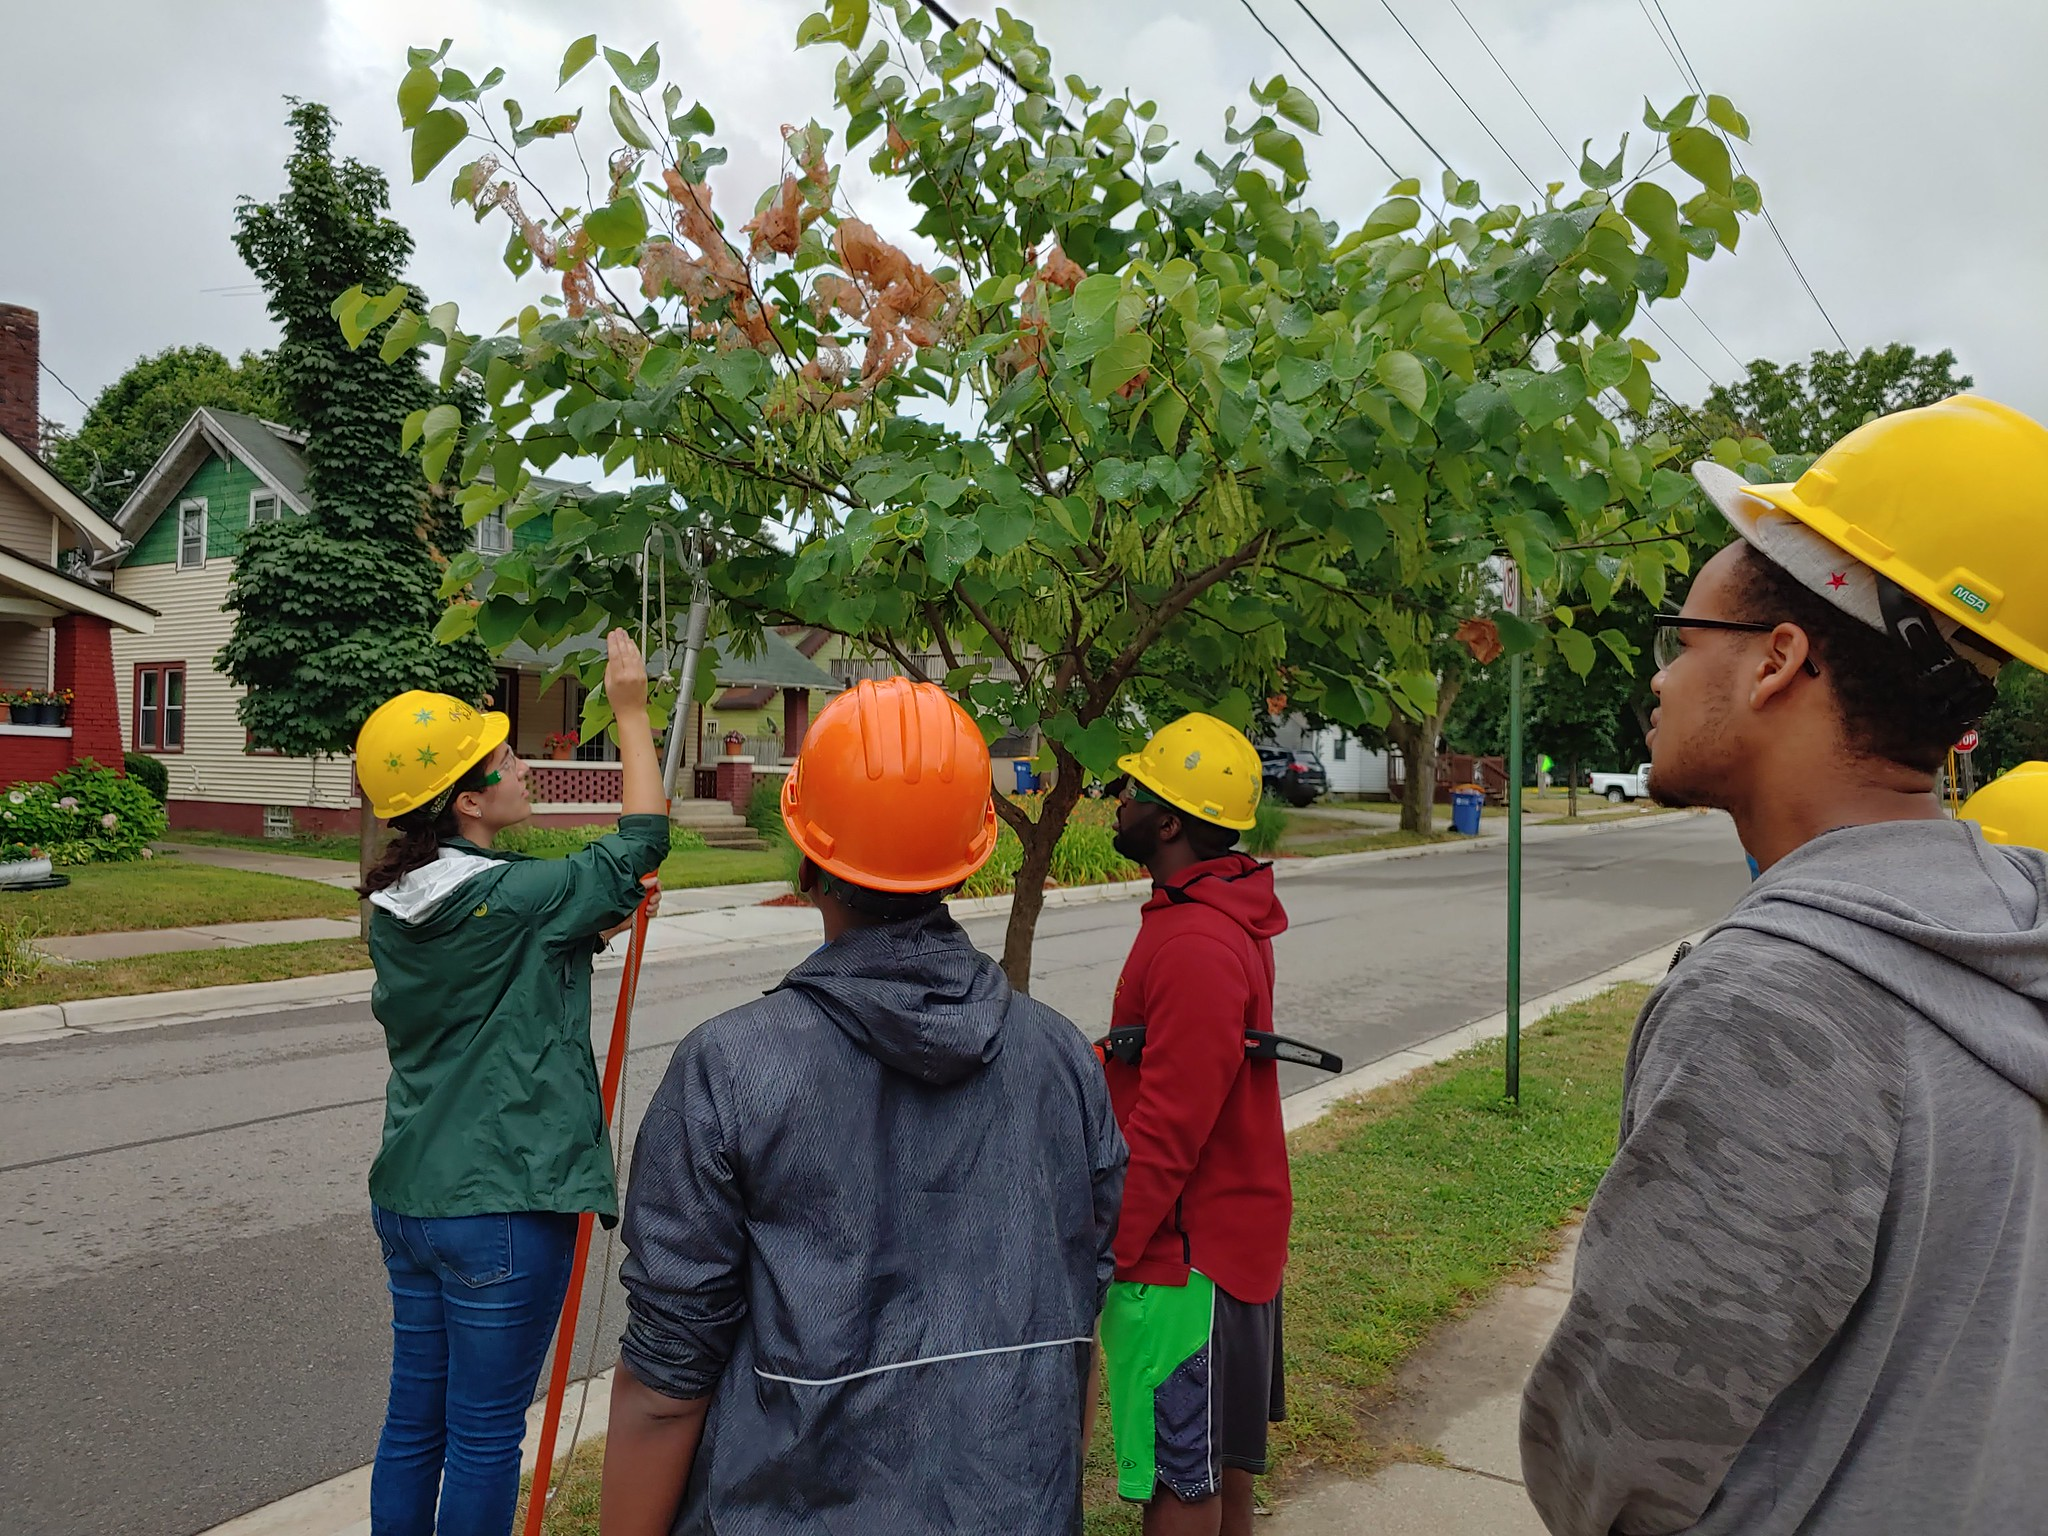 Tori Power, Friends of the Grand Rapids Parks, demonstrates pruning techniques to MSU Forestry students during the department's summer 2019 study away program. Pictured left to right: Tori Power, Davien Graham, Mario Singleton and Derrick Wade.